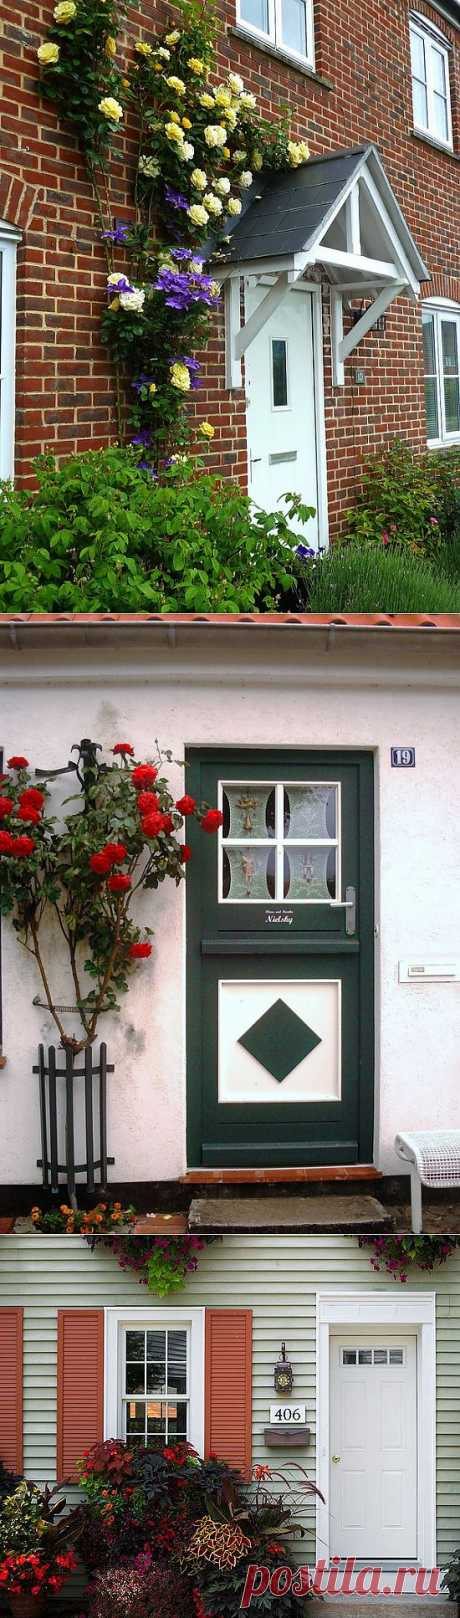 Registration and design of an entrance to the house: doors and flowers.